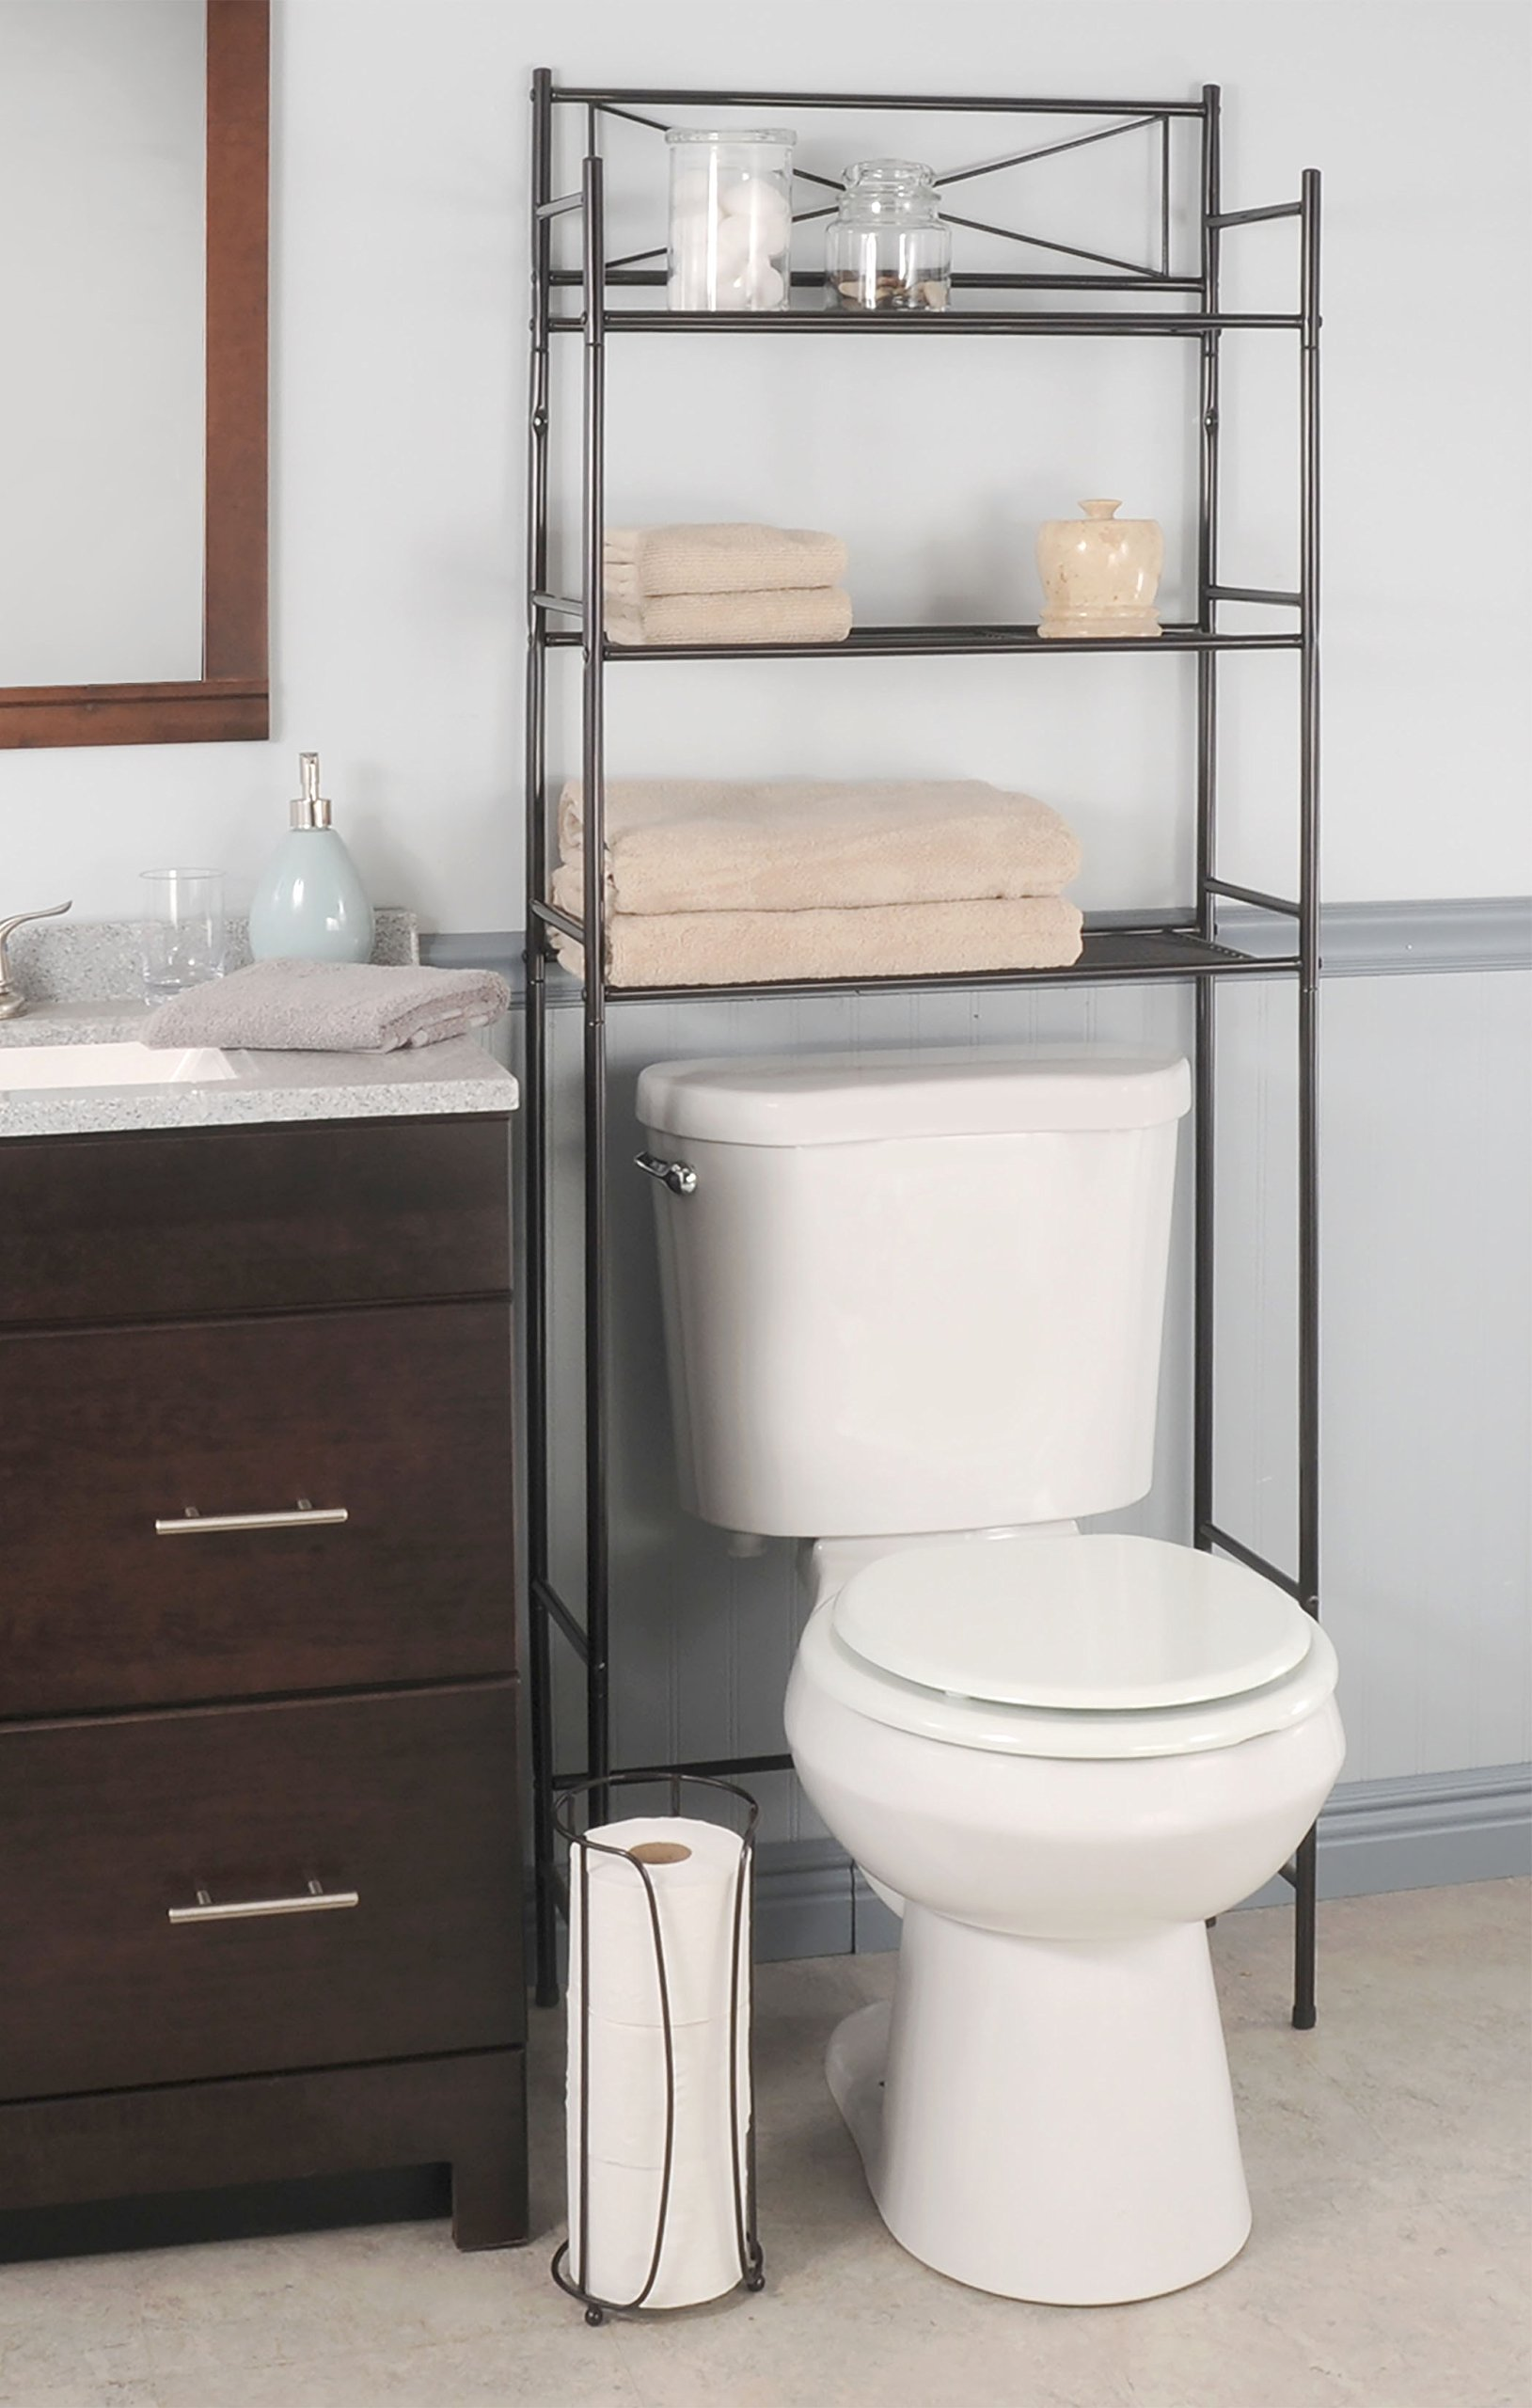 Ldr Bathroom Storage Space Saver Set 3 Piece Bronze Finish Amazon